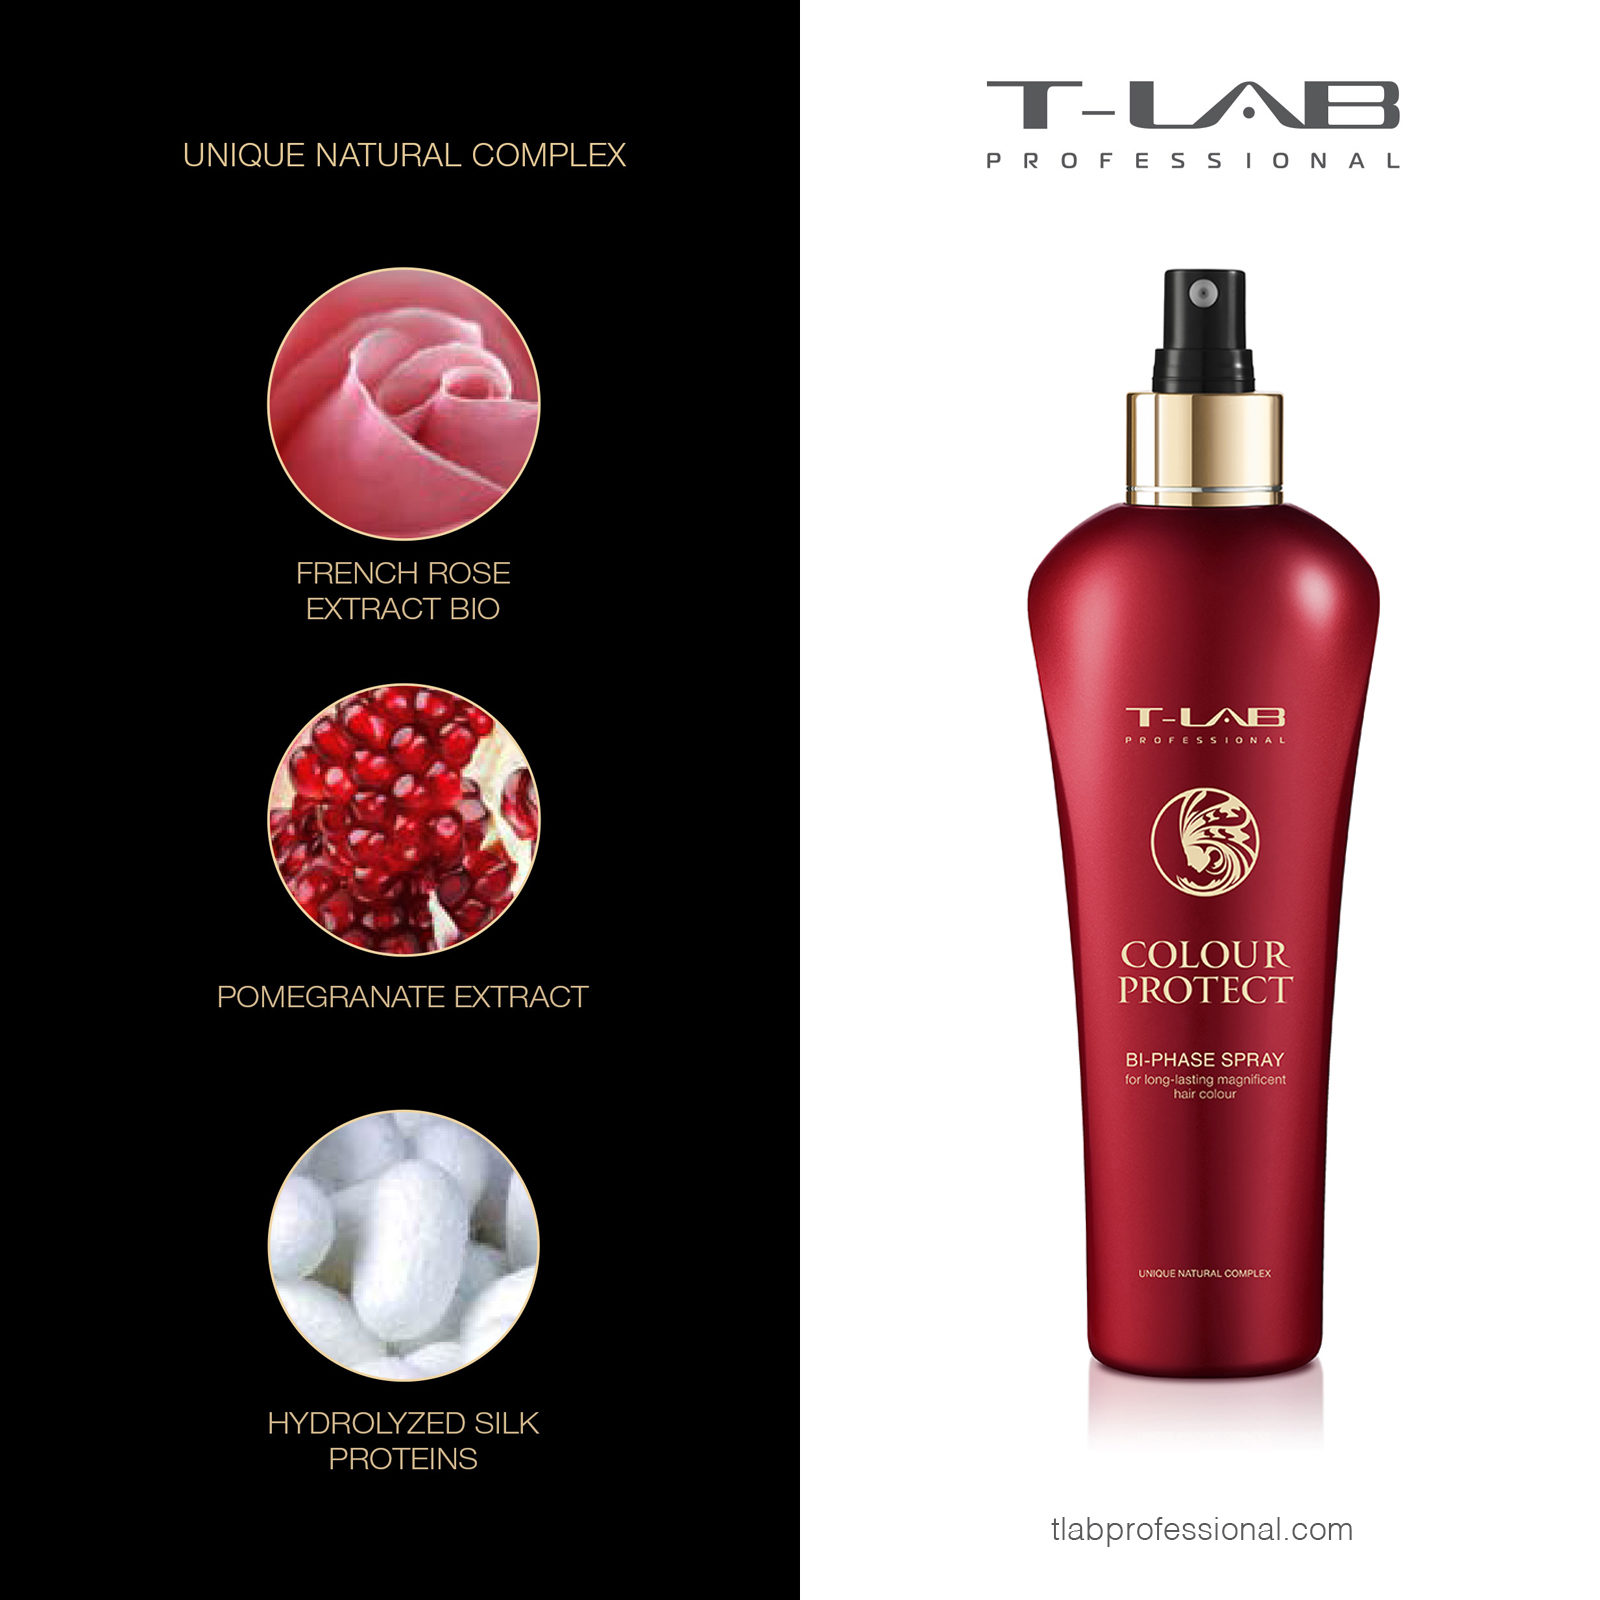 COLOUR PROTECT BI-PHASE SPRAY: FRENCH ROSE EXTRACT BIO, POMEGRANATE EXTRACT, HYDROLIZED SILK PROTEINS